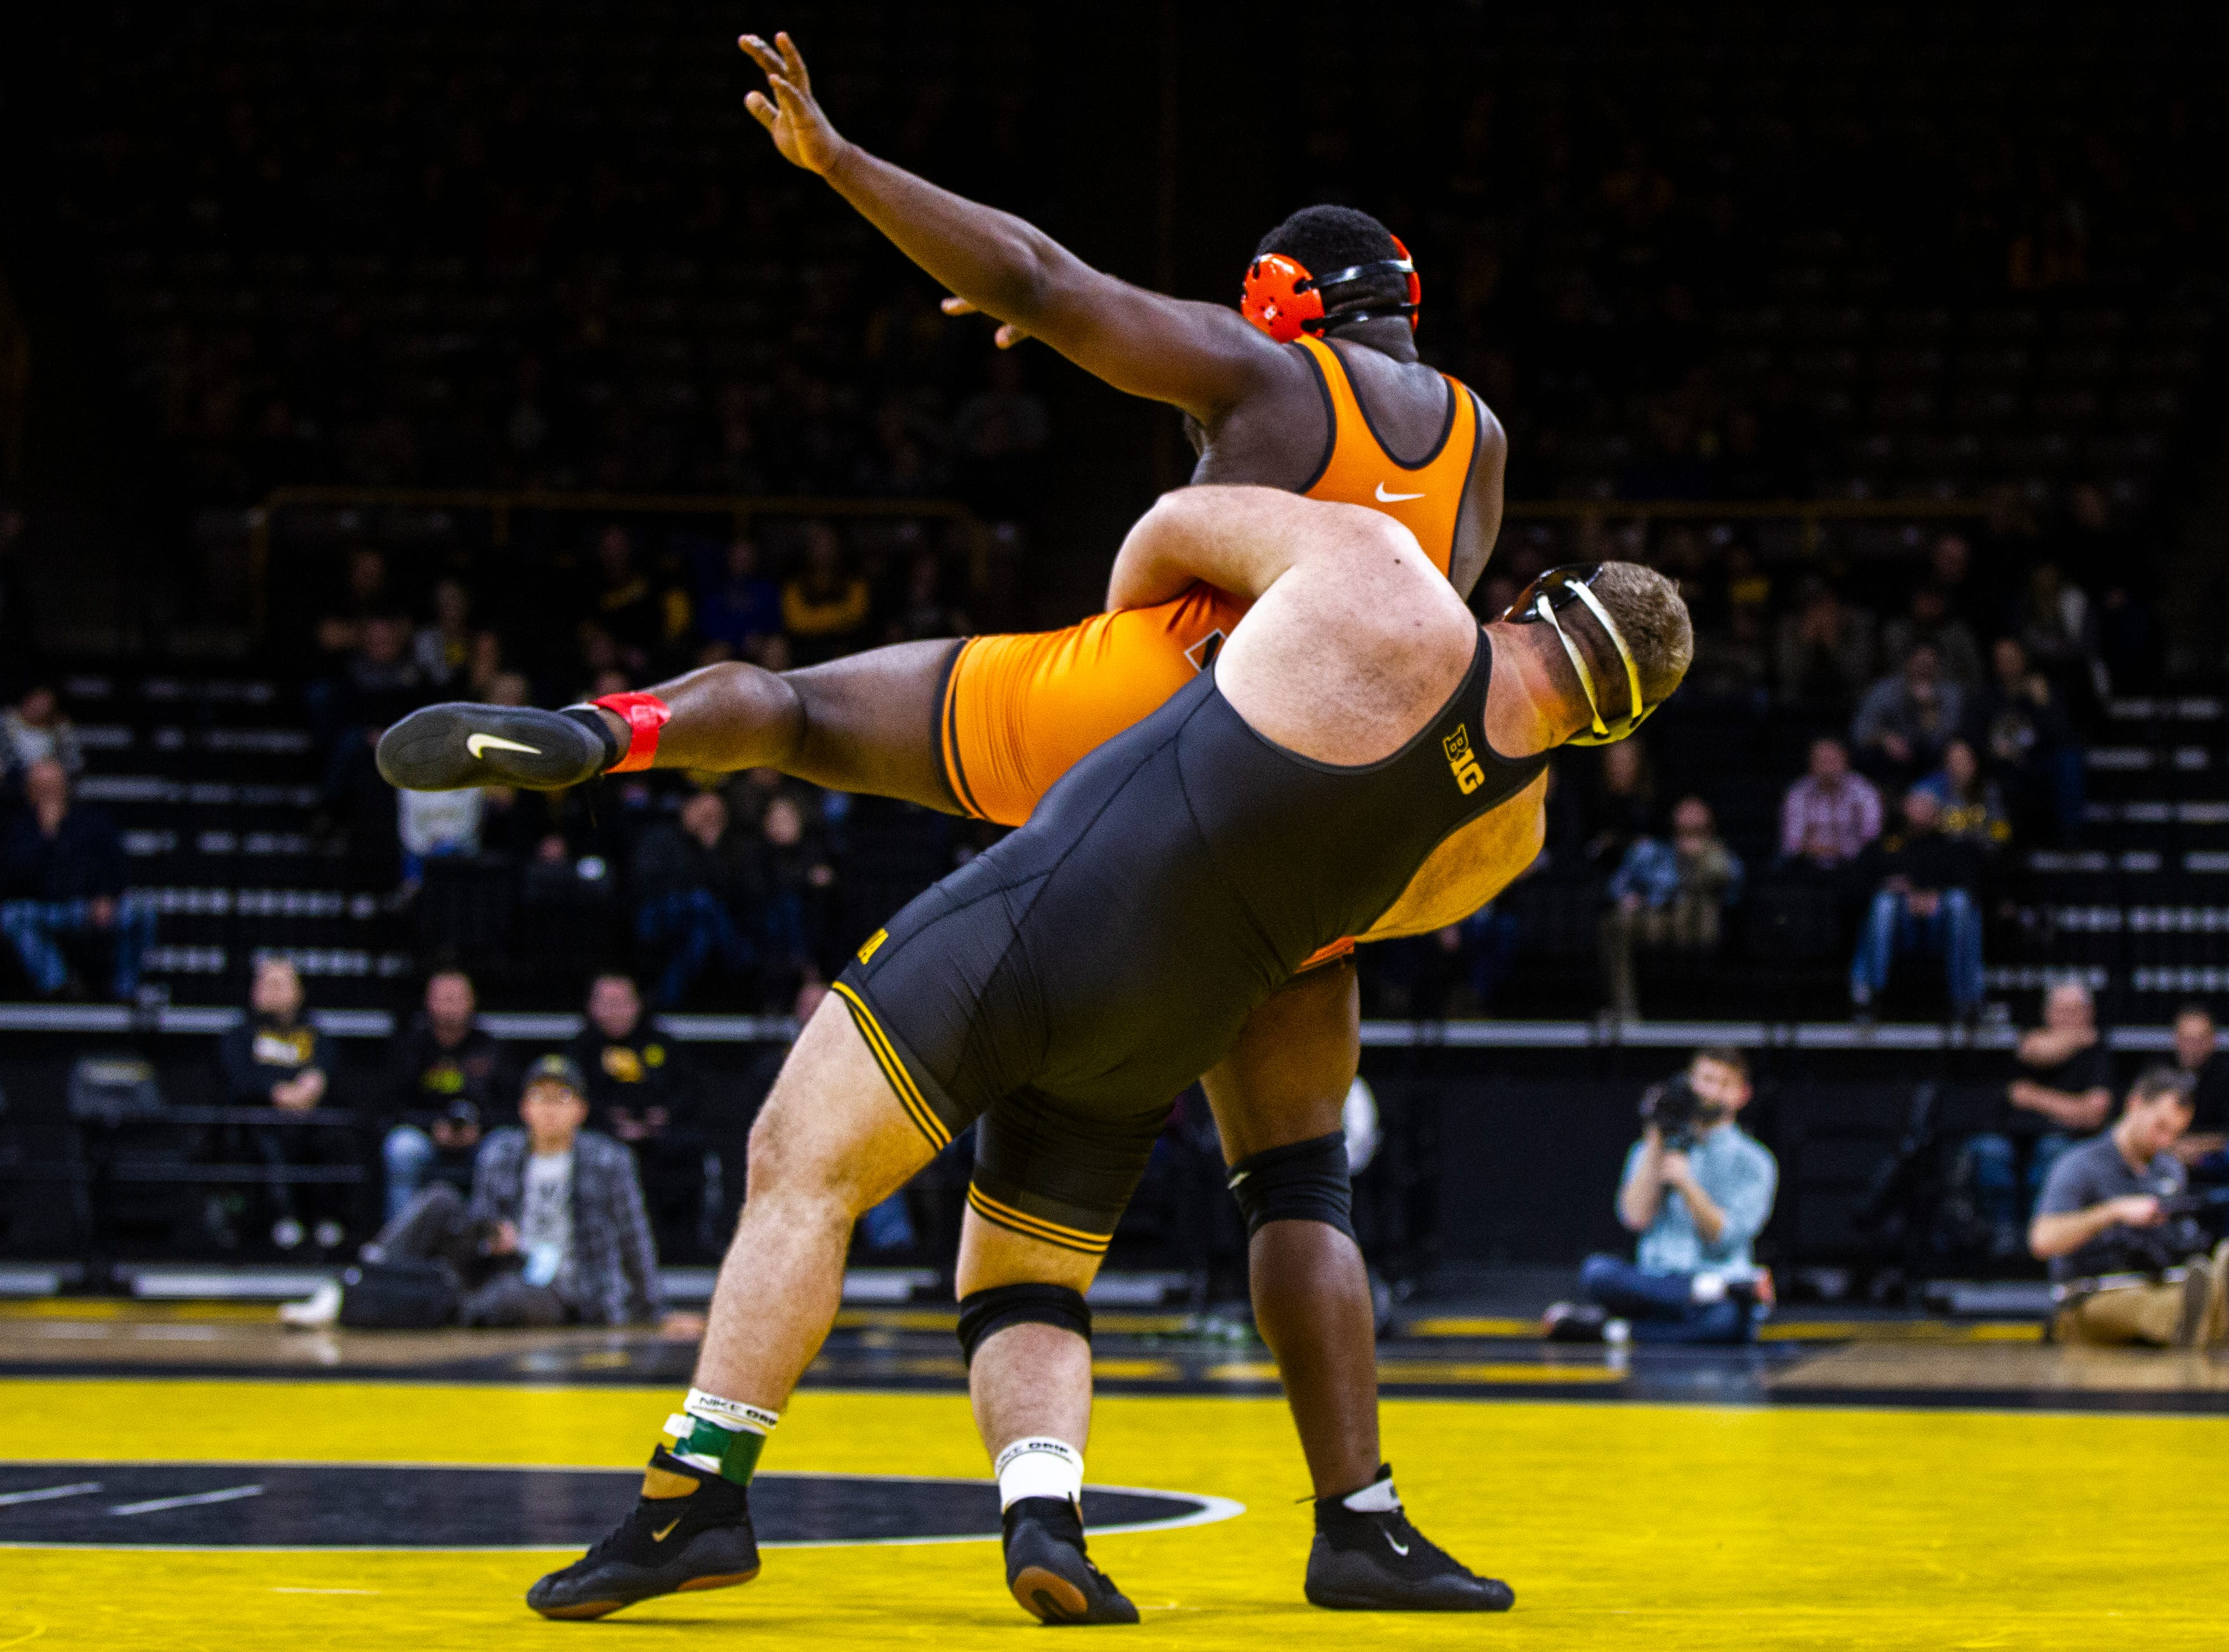 Iowa's Aaron Costello (right) wrestles Princeton's Obinna Ajah at 285 during an NCAA wrestle dual on Friday, Nov. 16, 2018, at Carver-Hawkeye Arena in Iowa City.